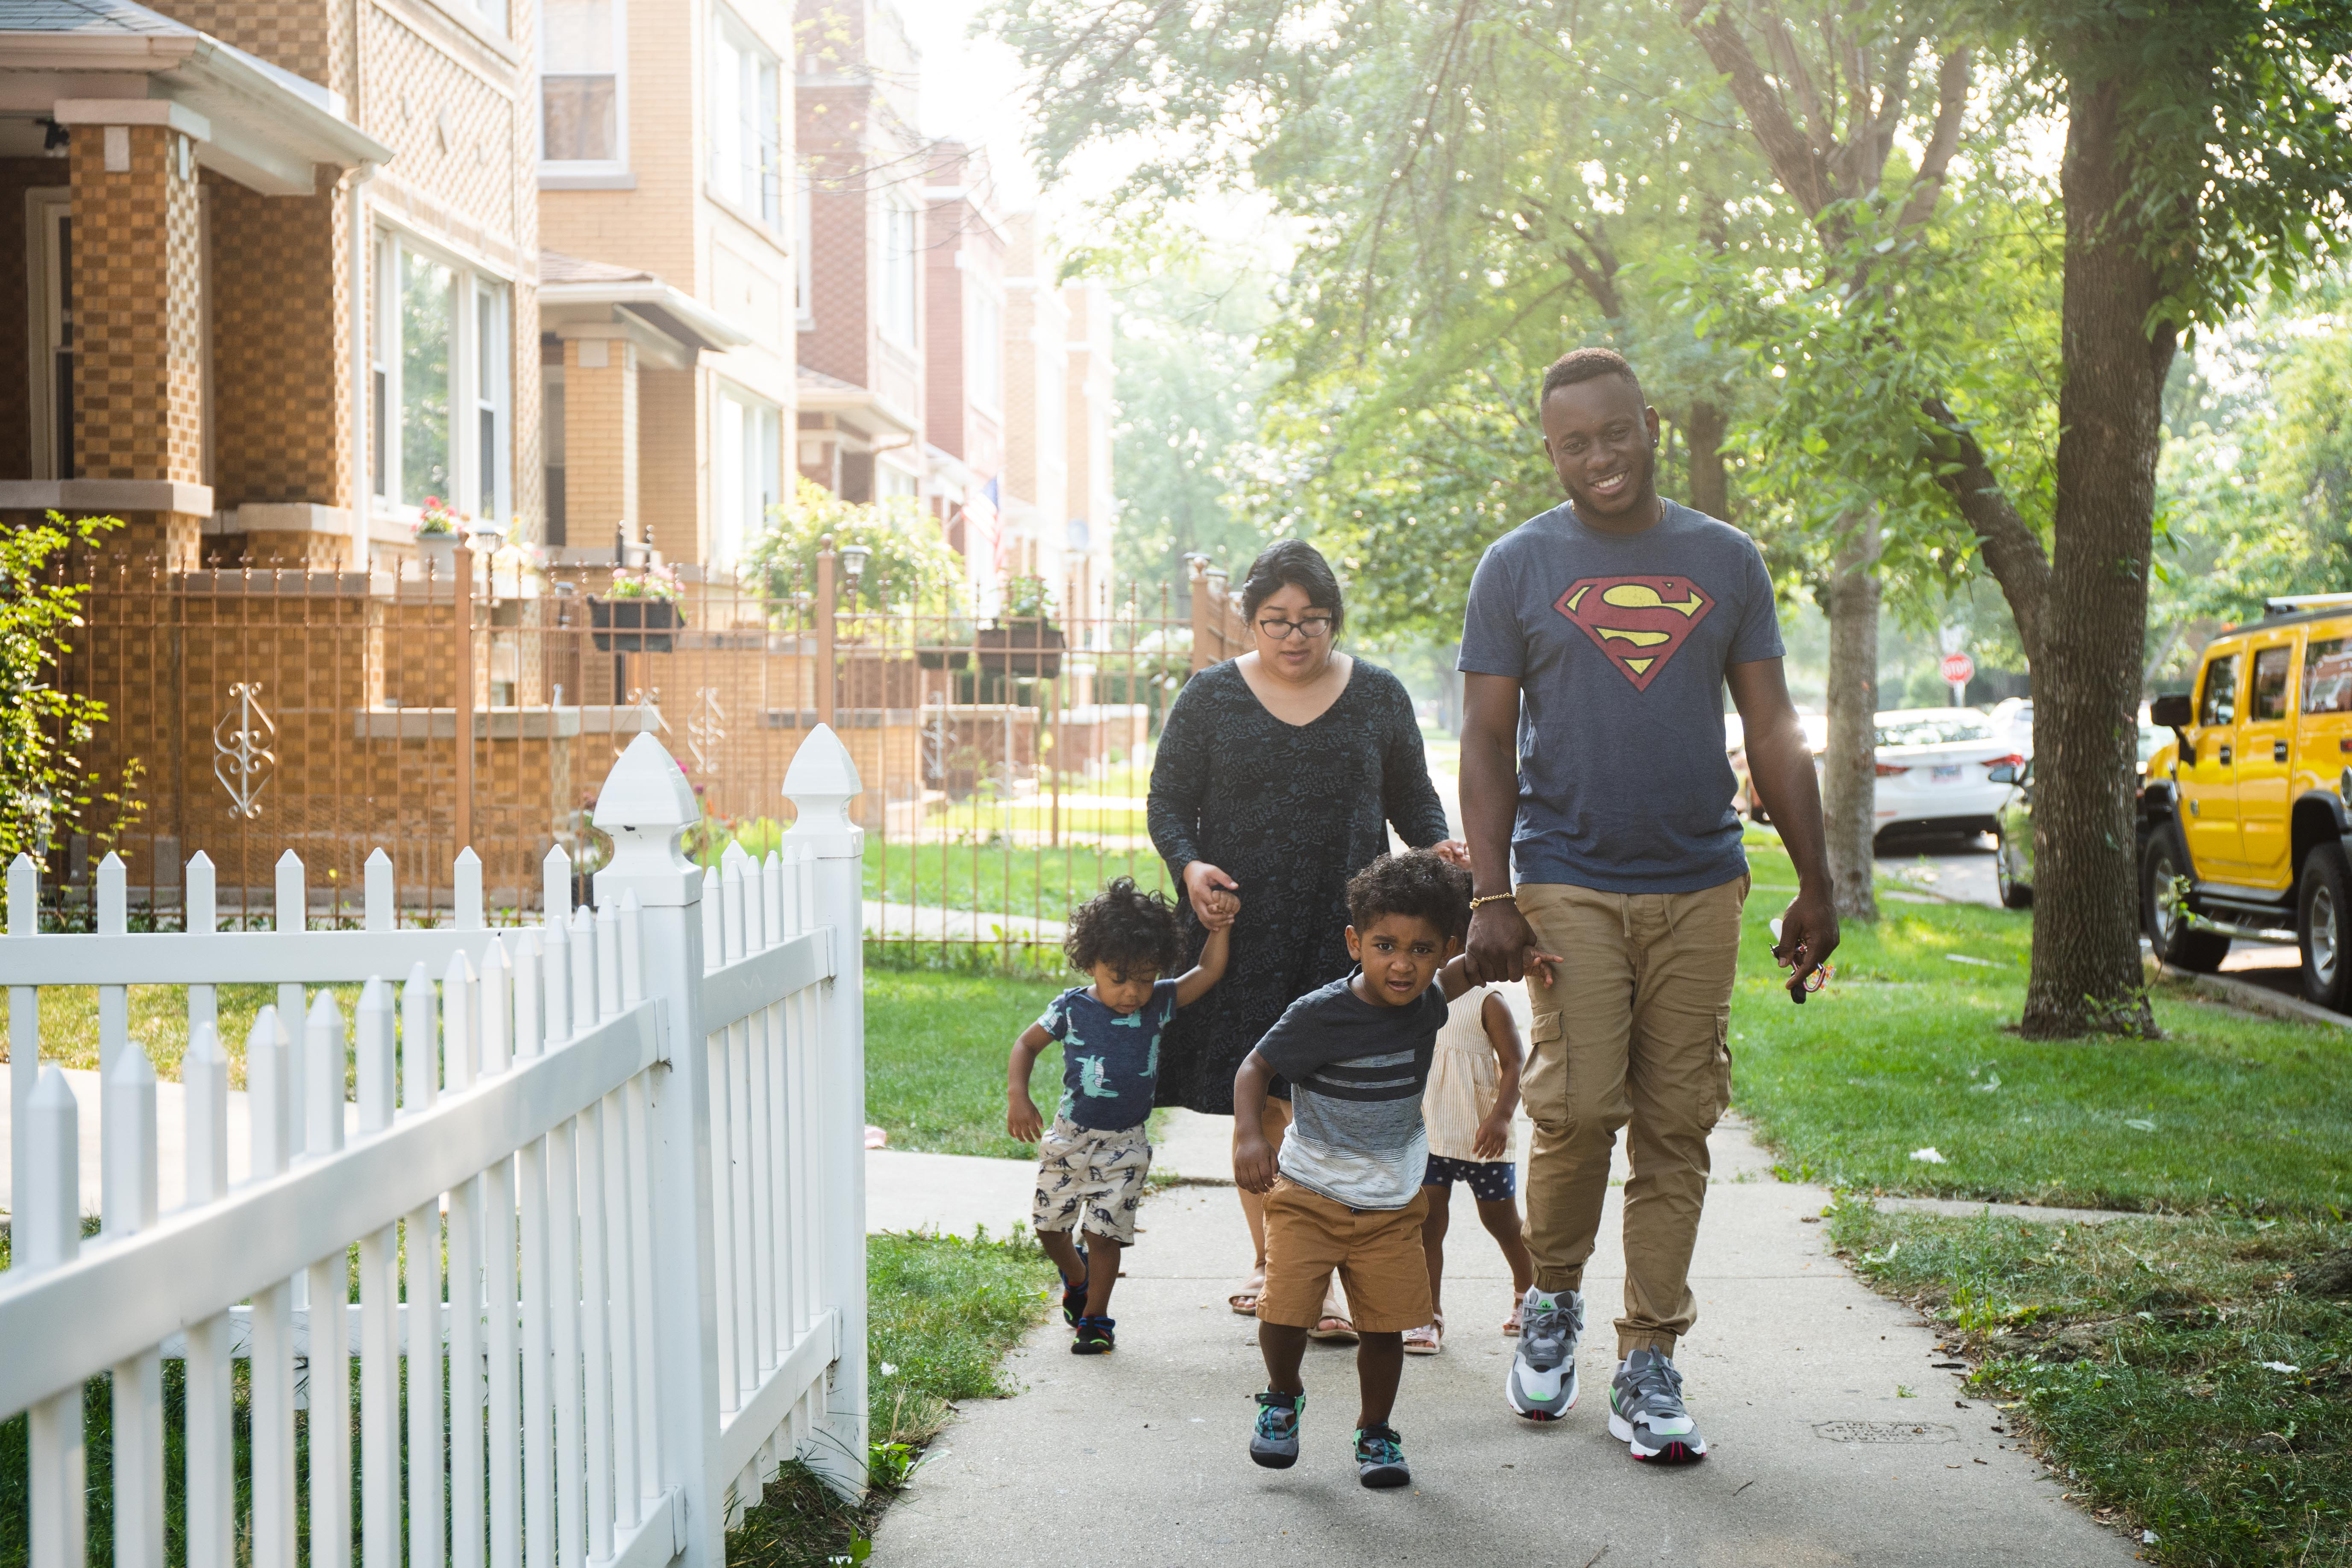 Maritza Bandera and her partner Roberto Parra walk to their car with their kids Gabriel Parra, front, and Eliel, back, outside their home in the Belmont Cragin neighborhood.